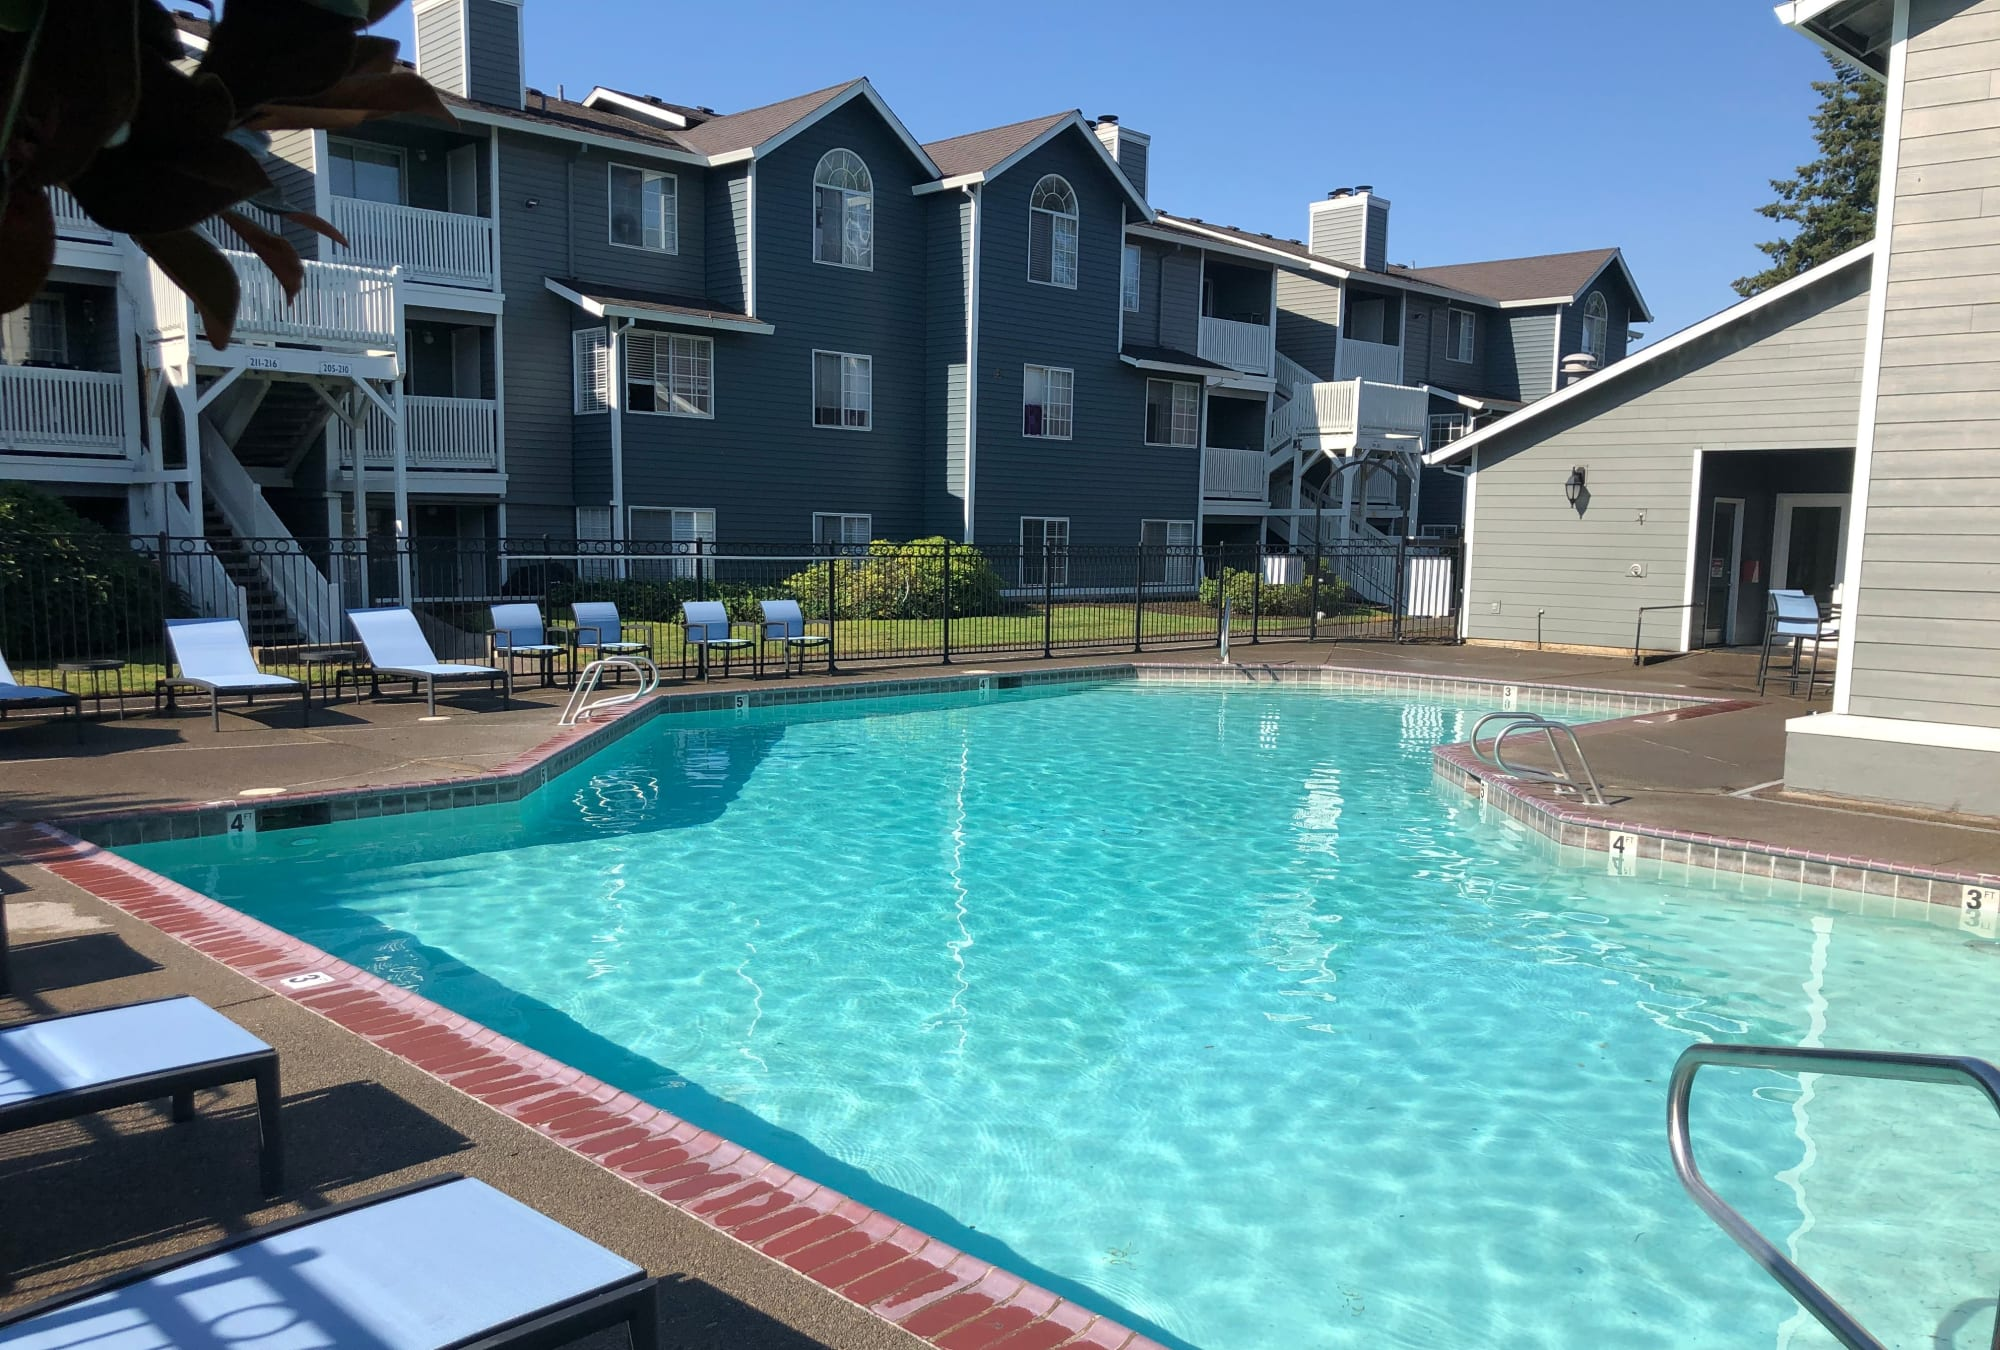 Beautiful pool area and lounge chairs at Walnut Grove Landing Apartments in Vancouver, WA